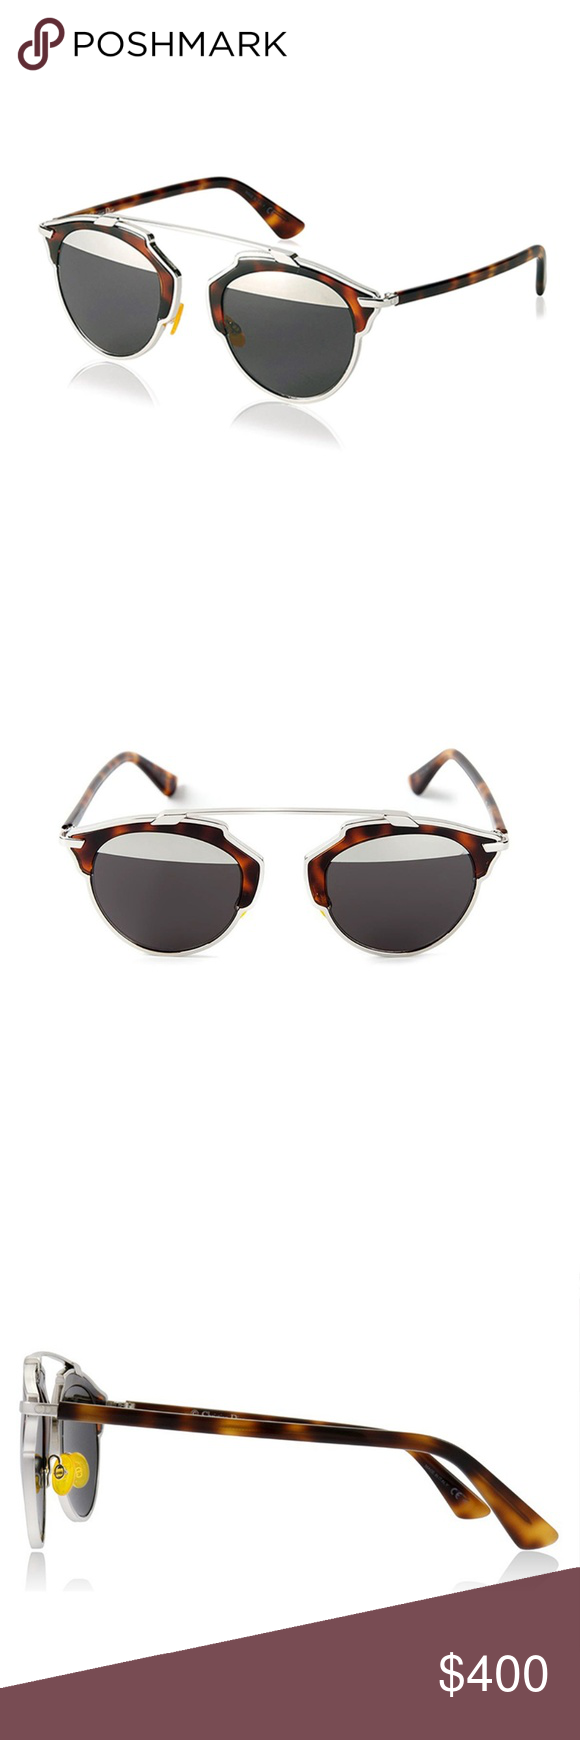 d0bd9525cb NWB Dior  So Real  Sunglasses Dior s  So Real  sunglasses feature grey and